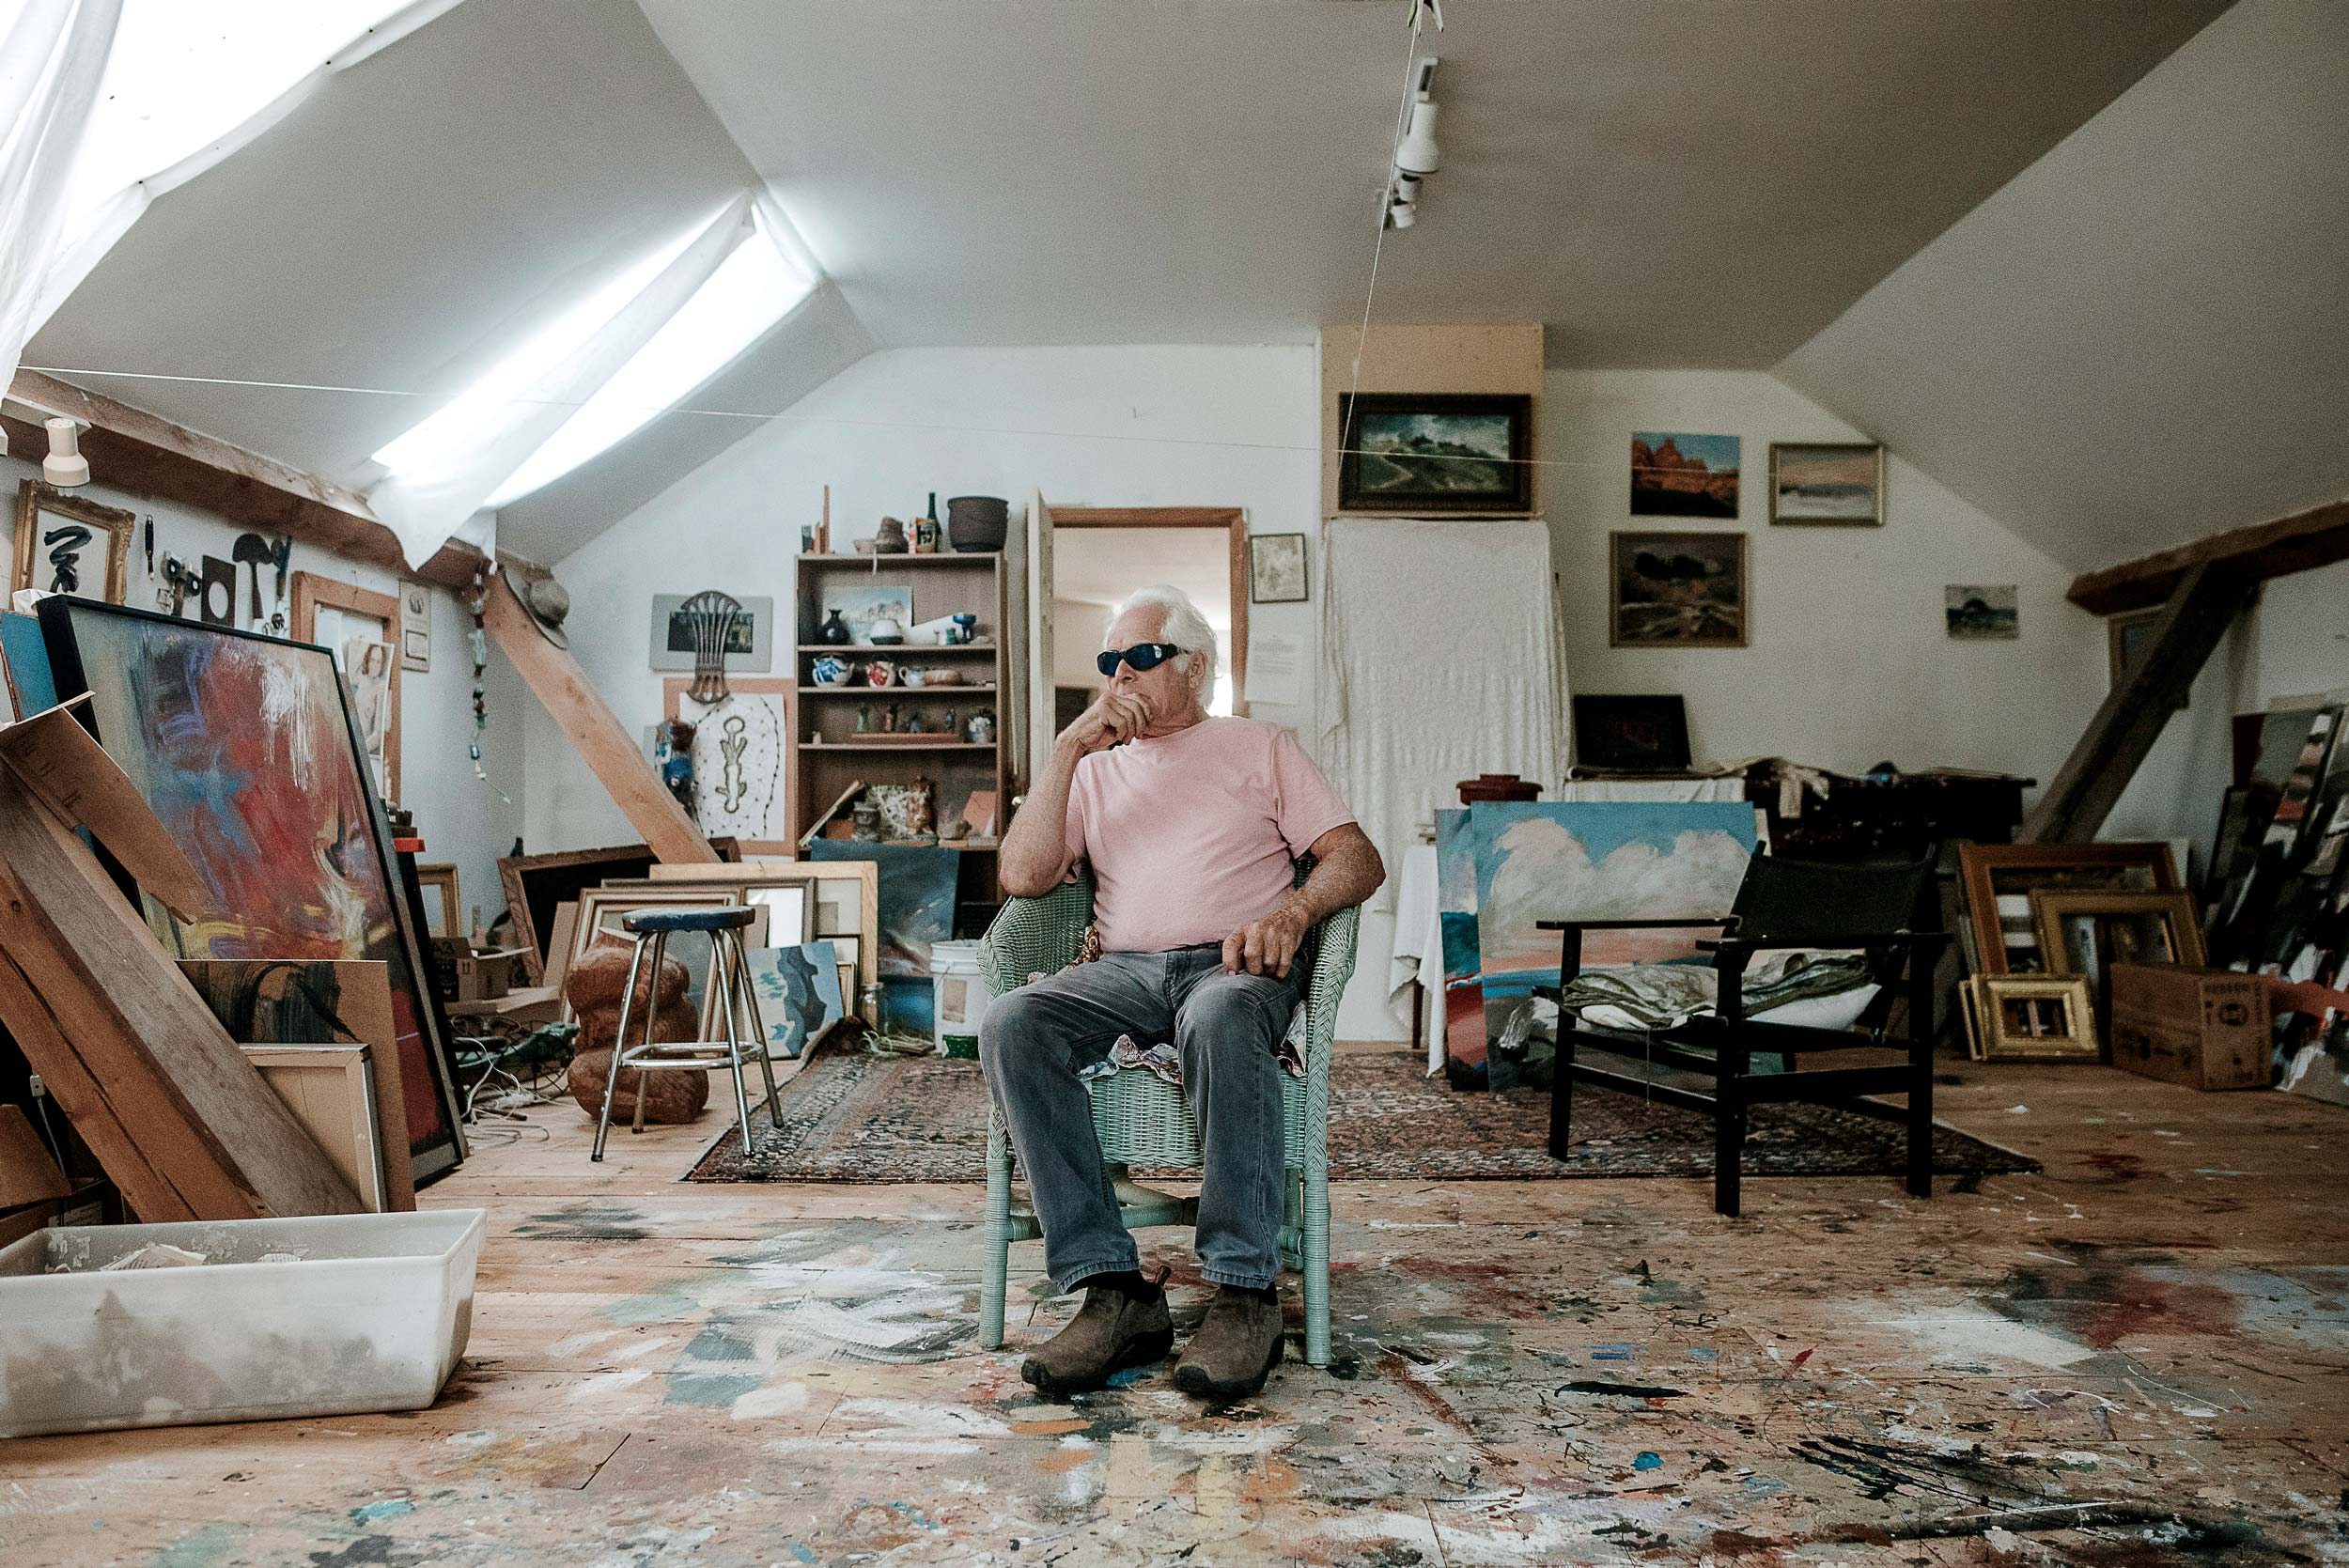 The wide-planked floor of Denis's studio is a melange of paint smears, splashes, and dribbles, a kaleidoscope mishmash of color that looks like a work of art itself.